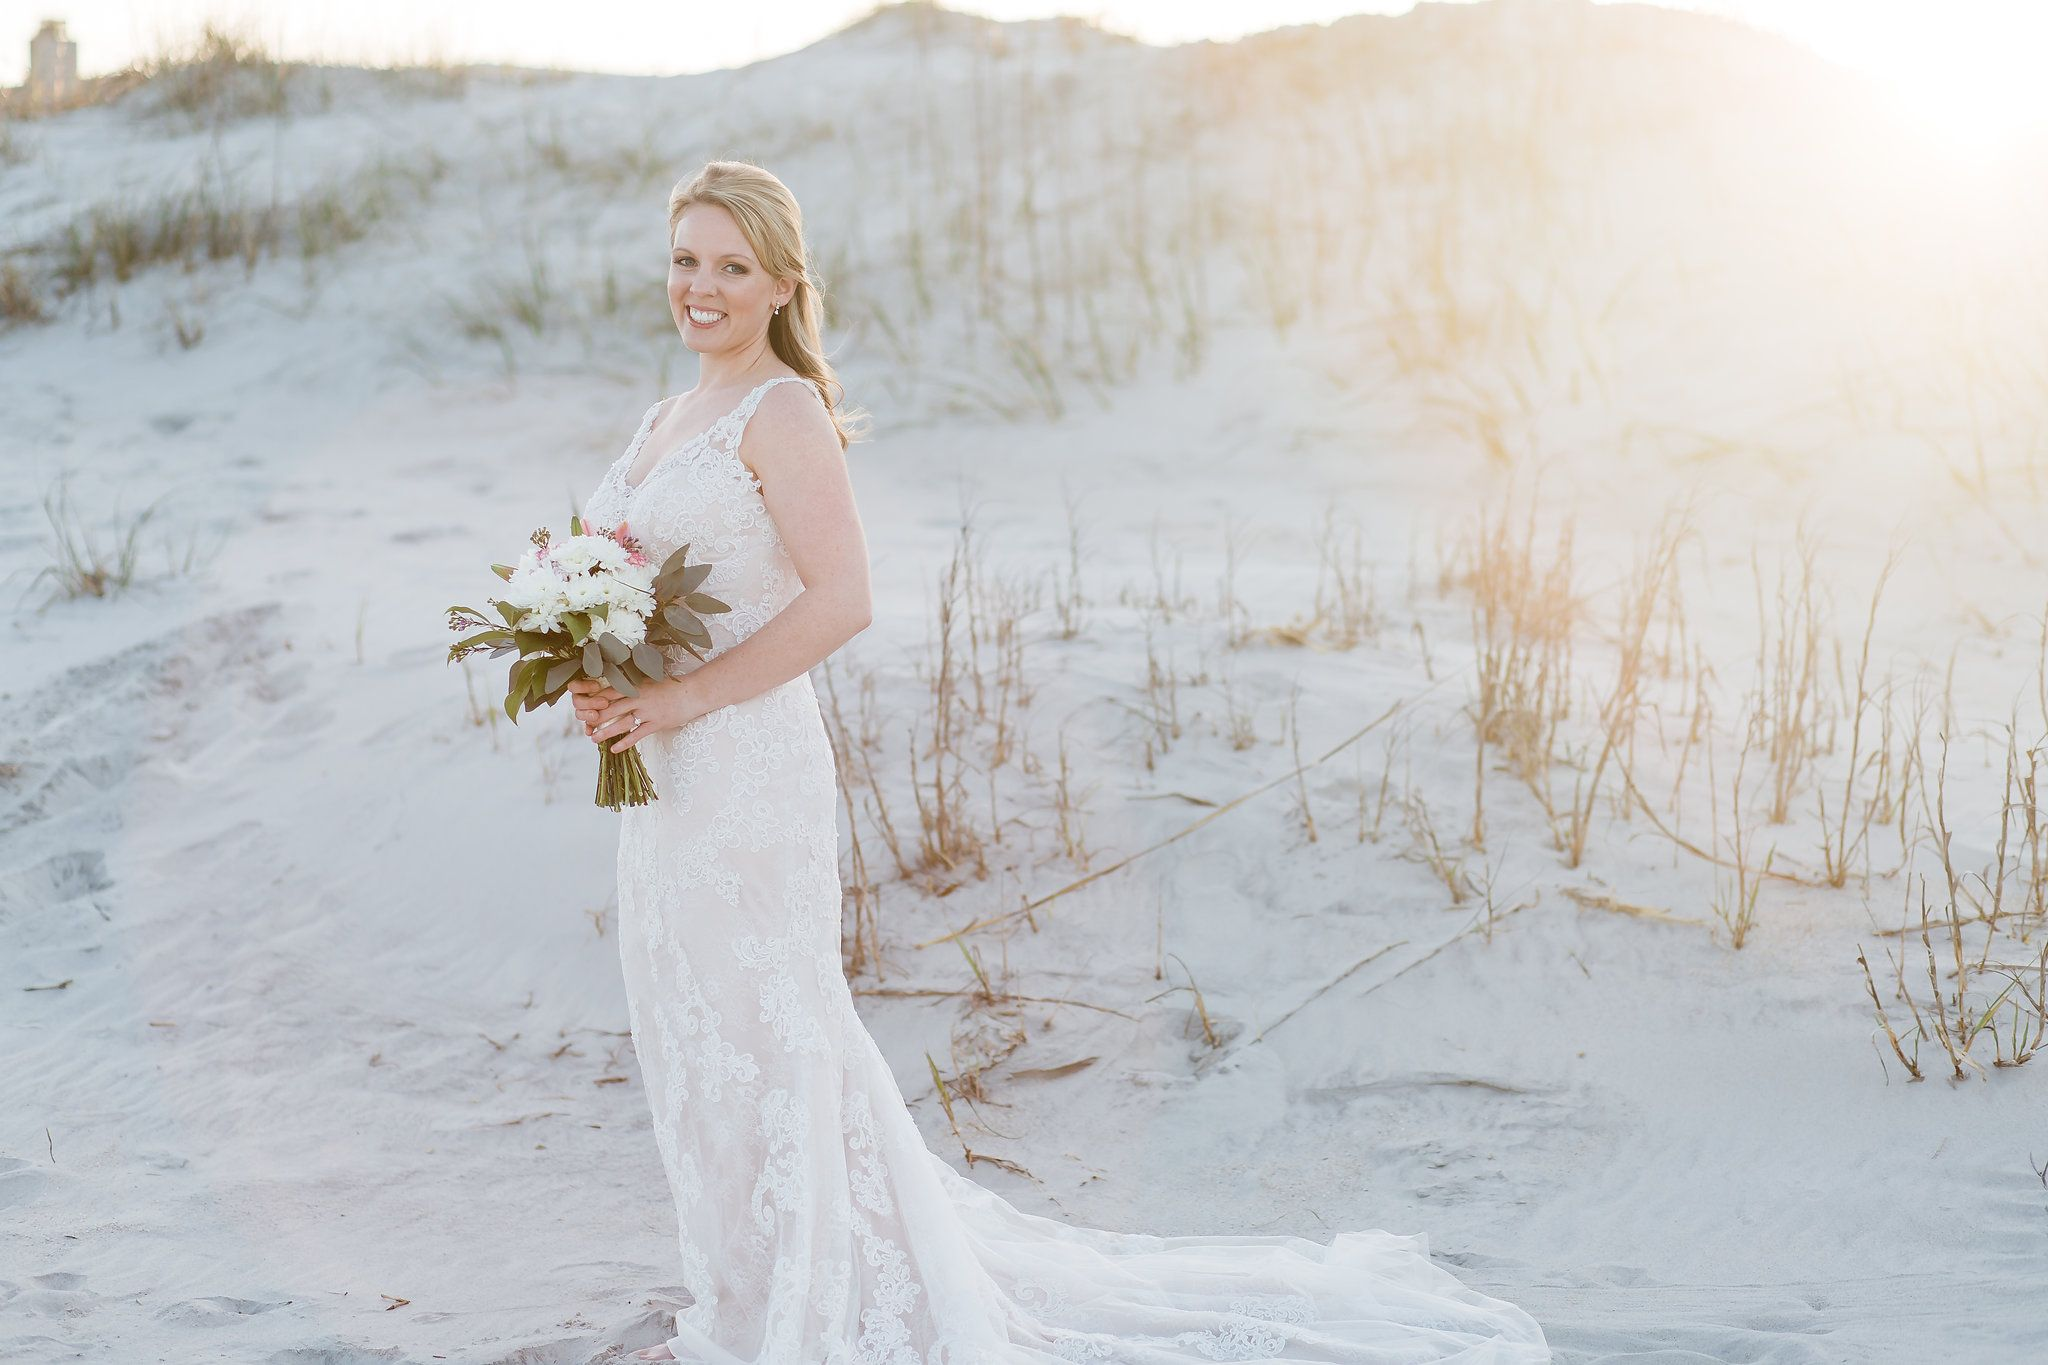 Wilmington weddings bridal portraits wedding photo ideas